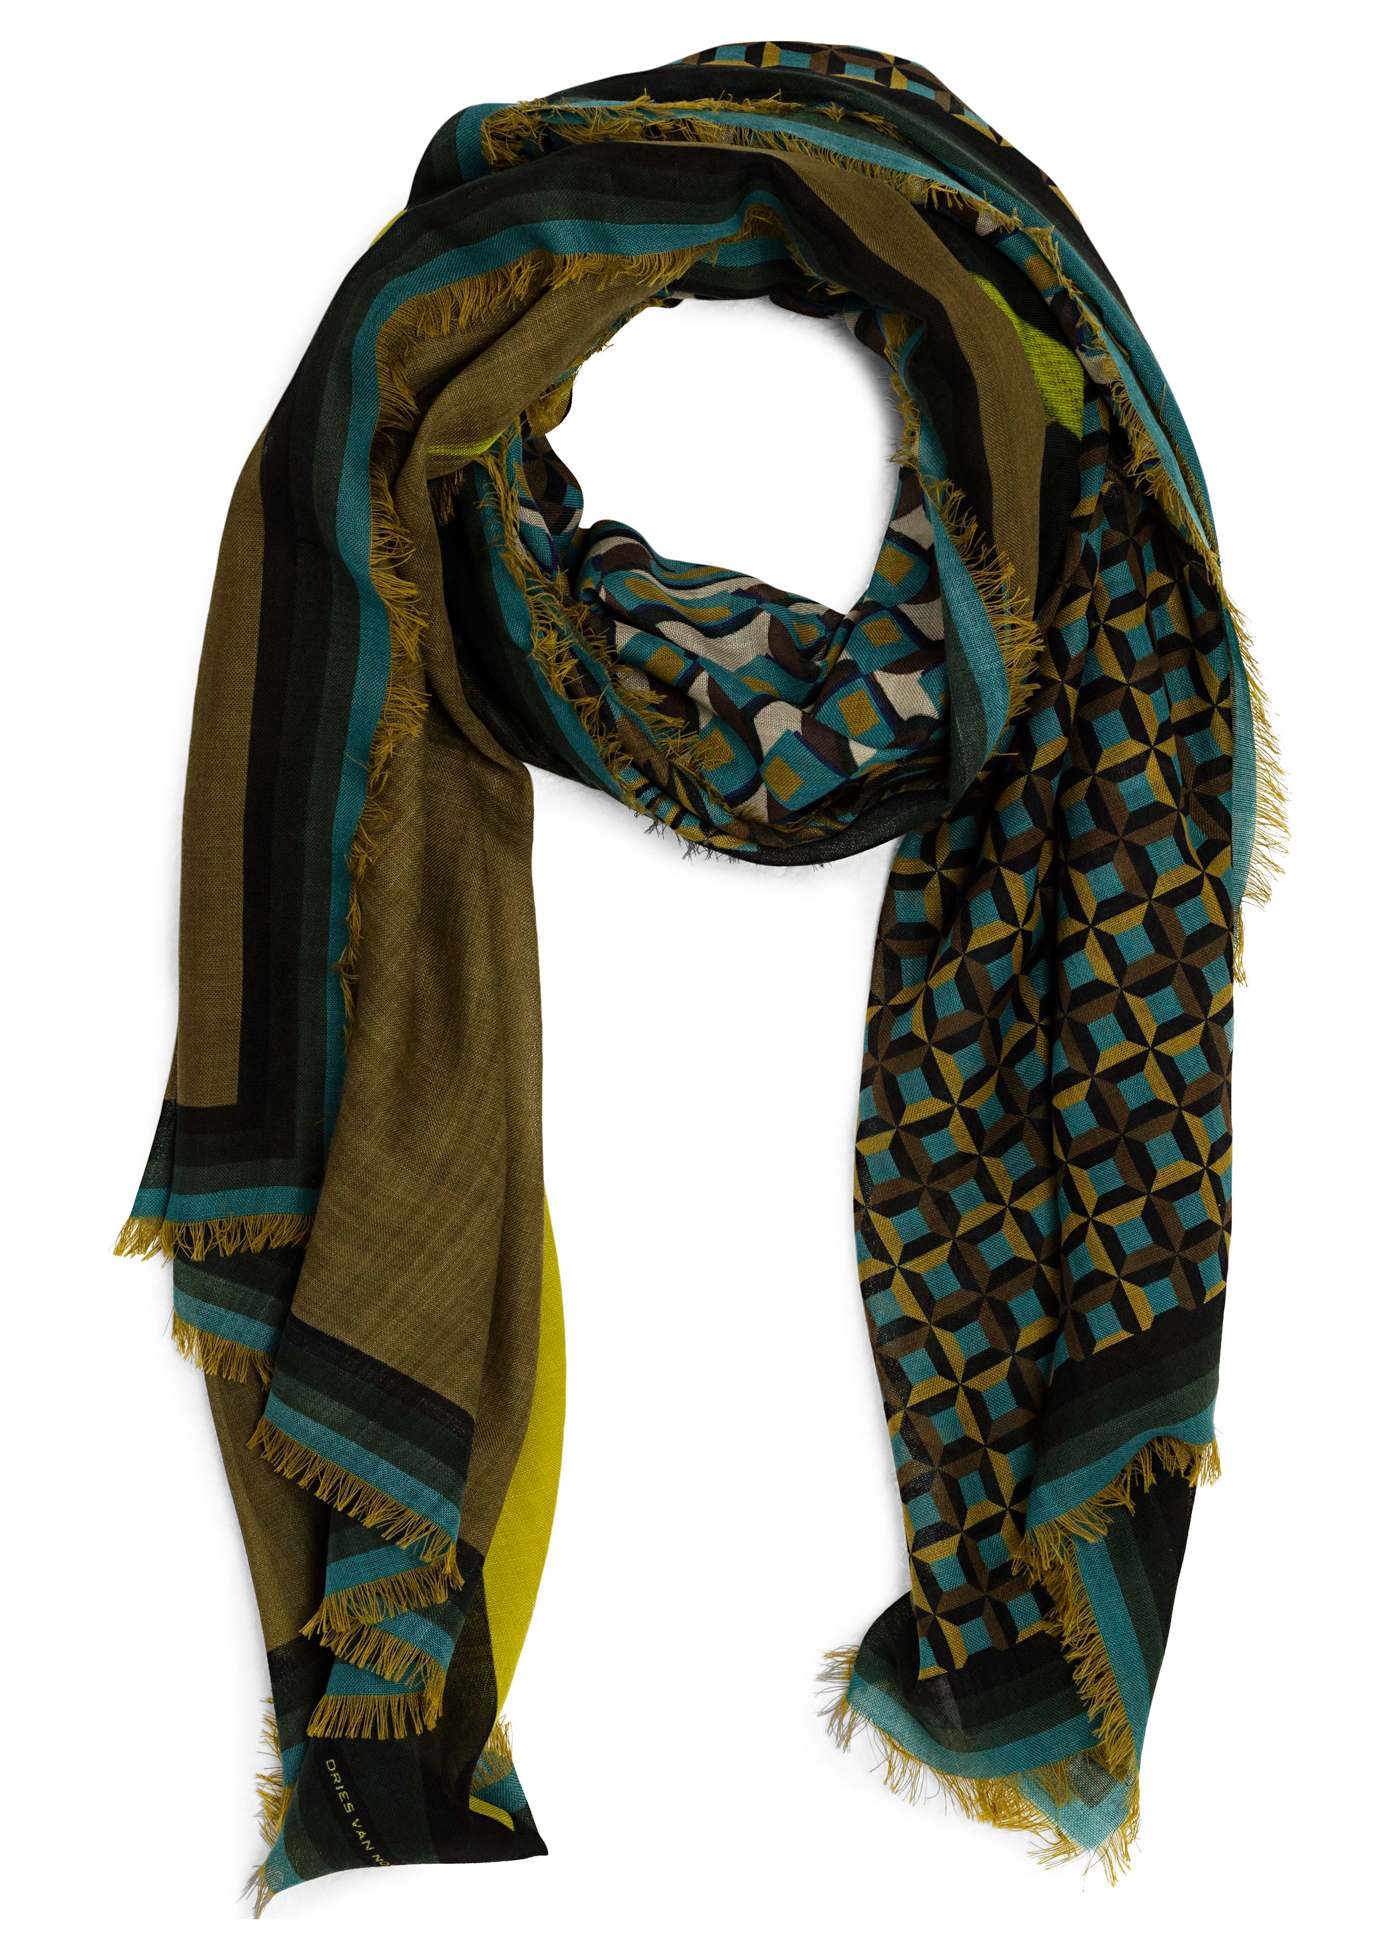 FLY 212 Q.3111 M.W.SCARF image number 0